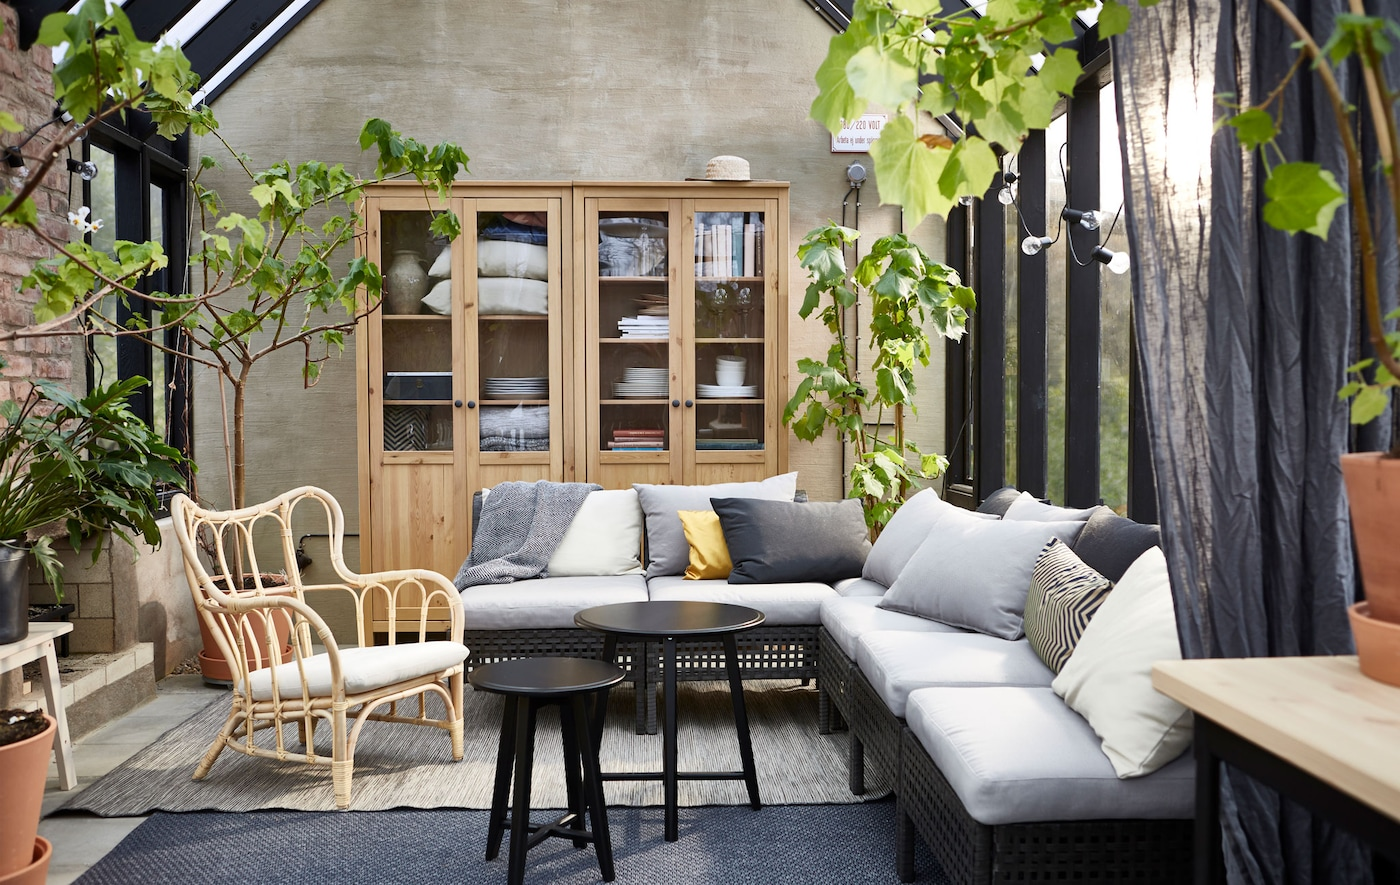 Outdoor Living Room Inspiration Garden Ideas Ikea